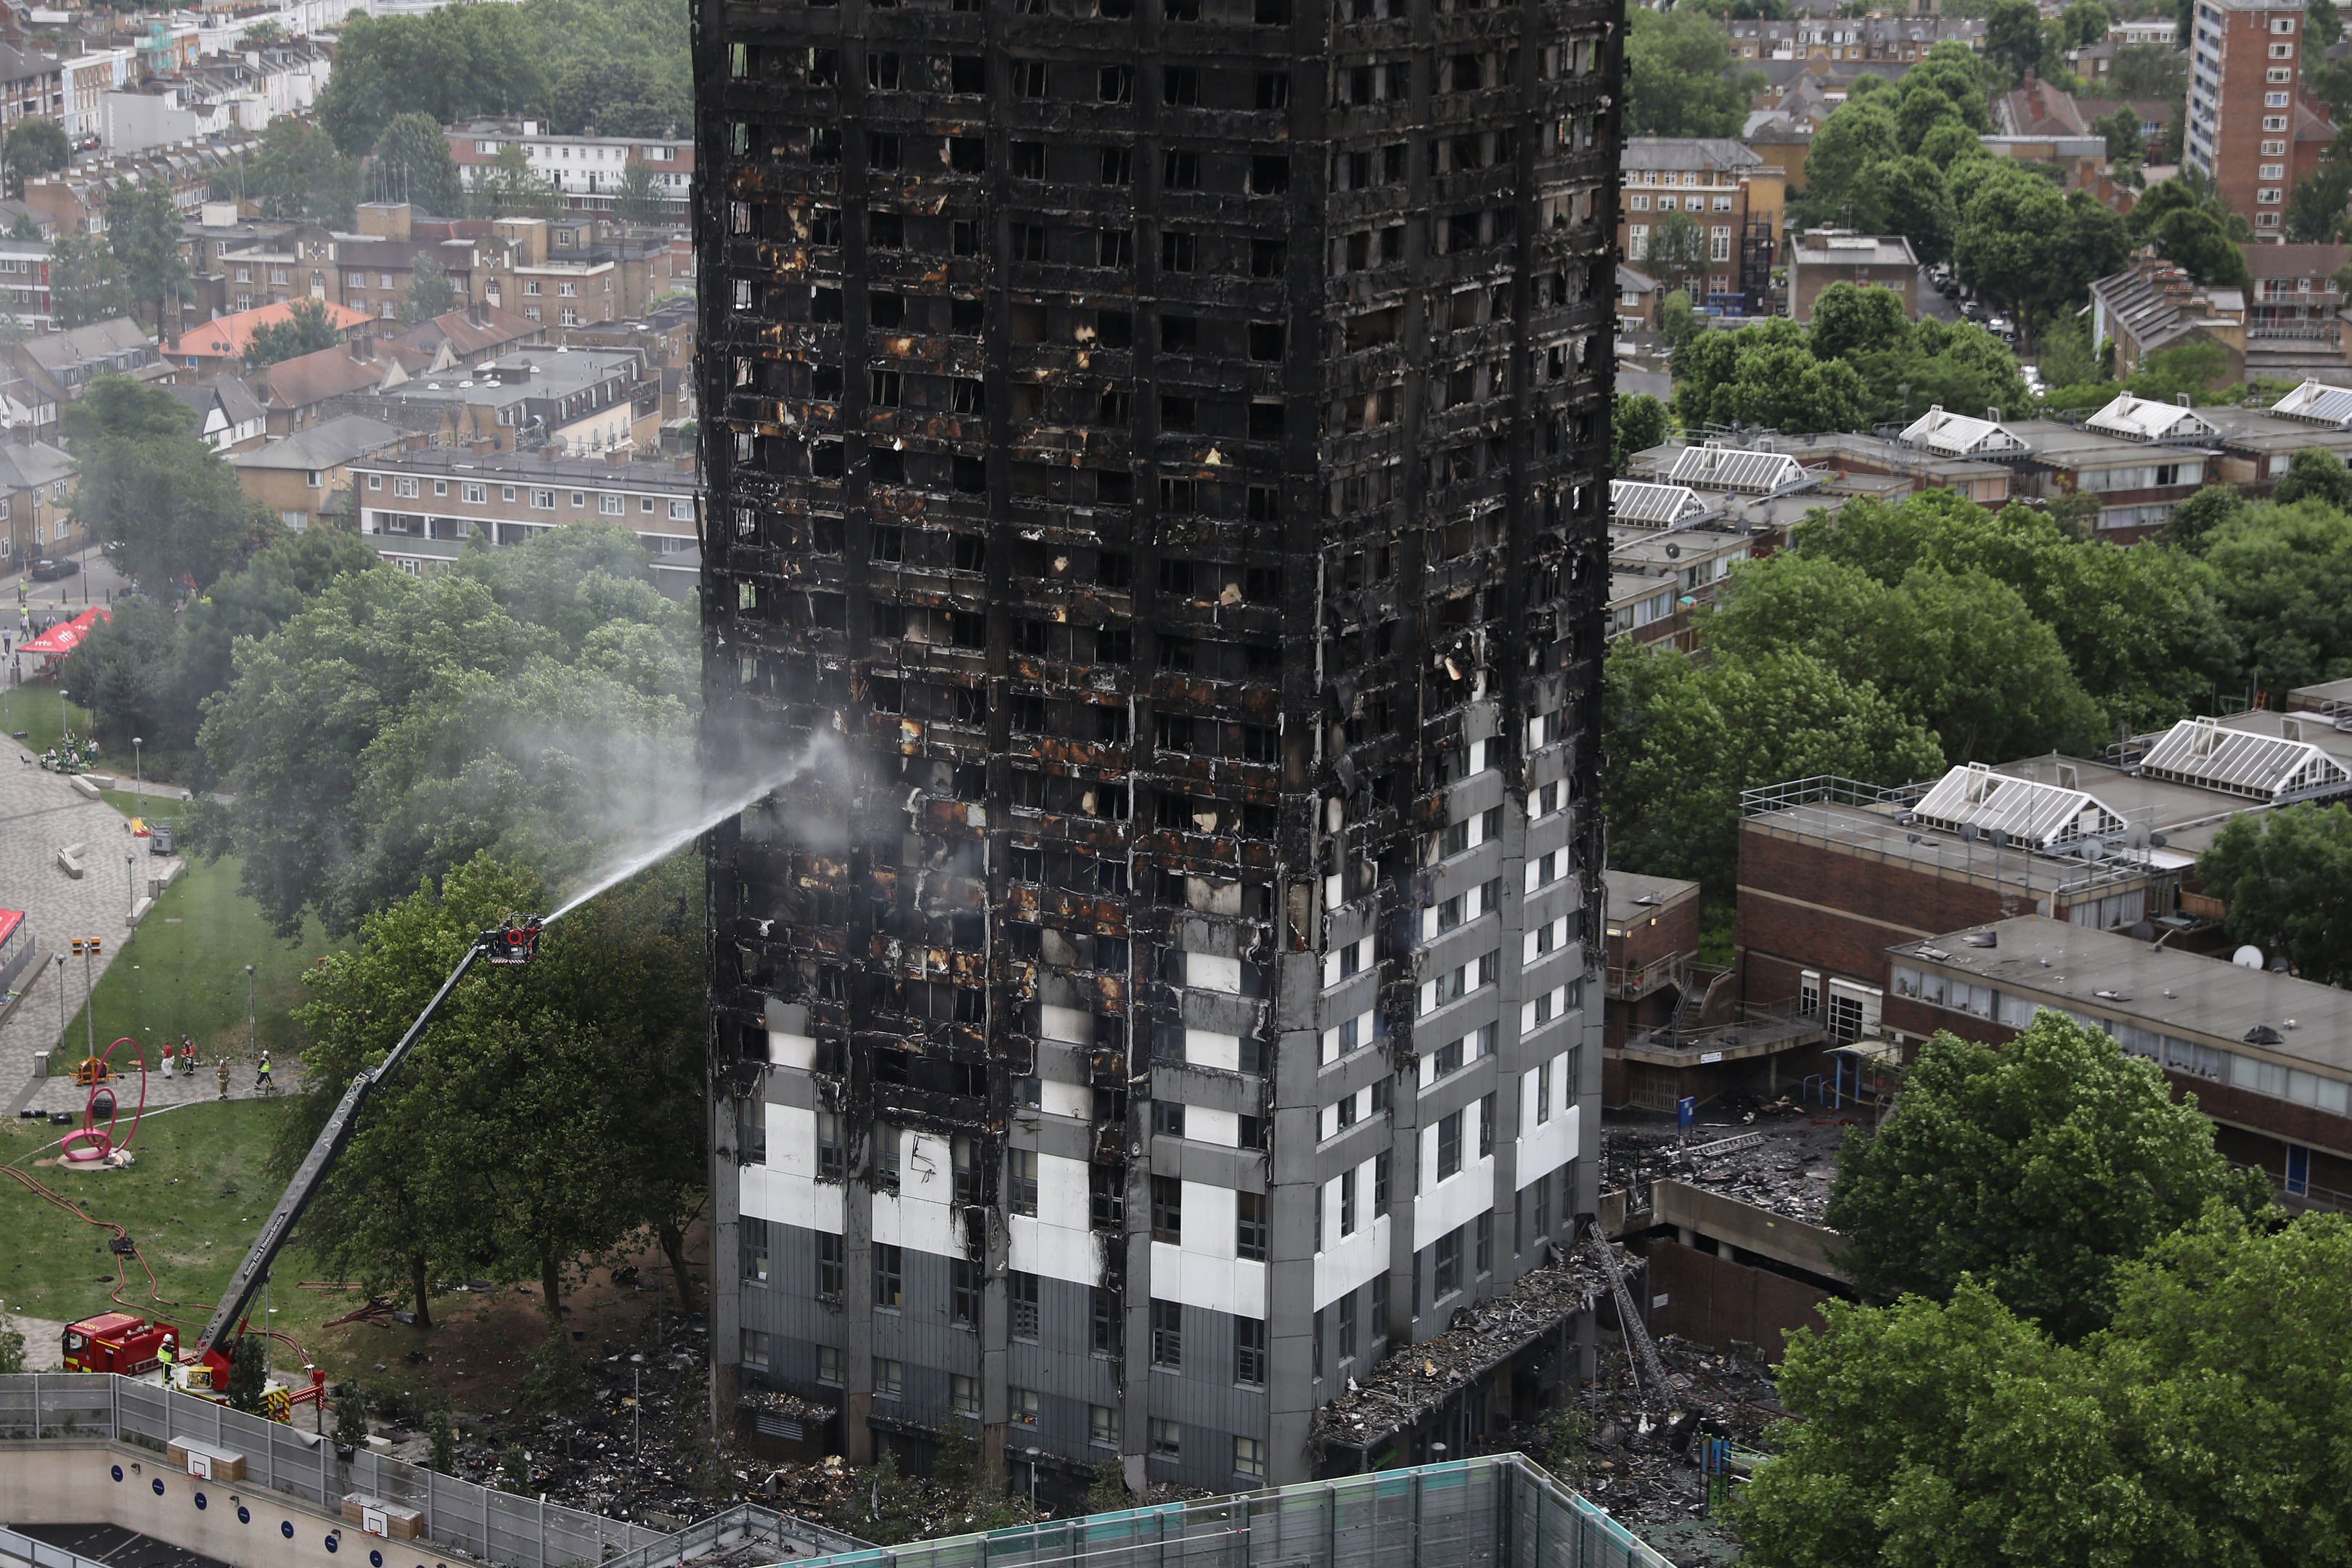 A hose dousing the fire at Grenfell Tower on June 15, 2017.